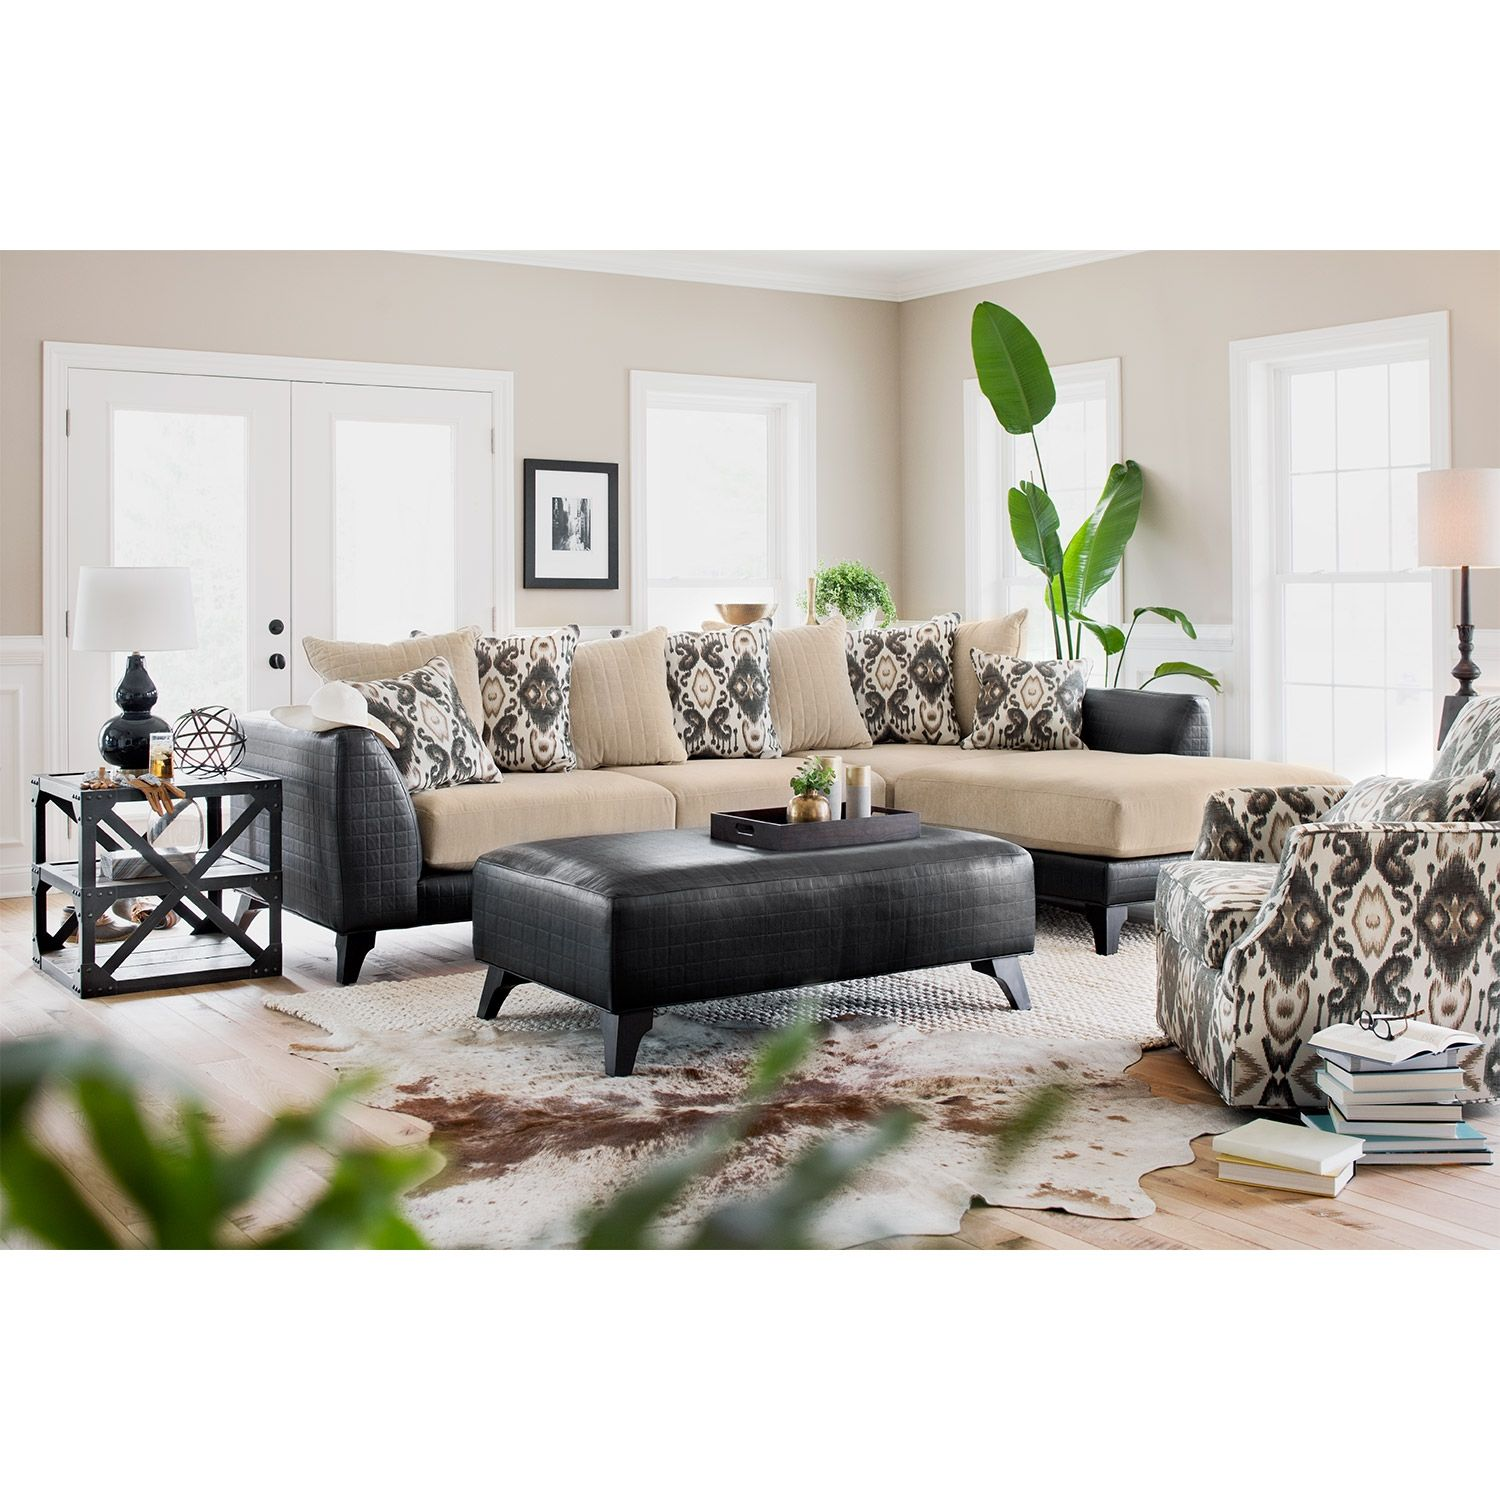 Charming Living Room Furniture   Gotham 2 Pc. Sectional